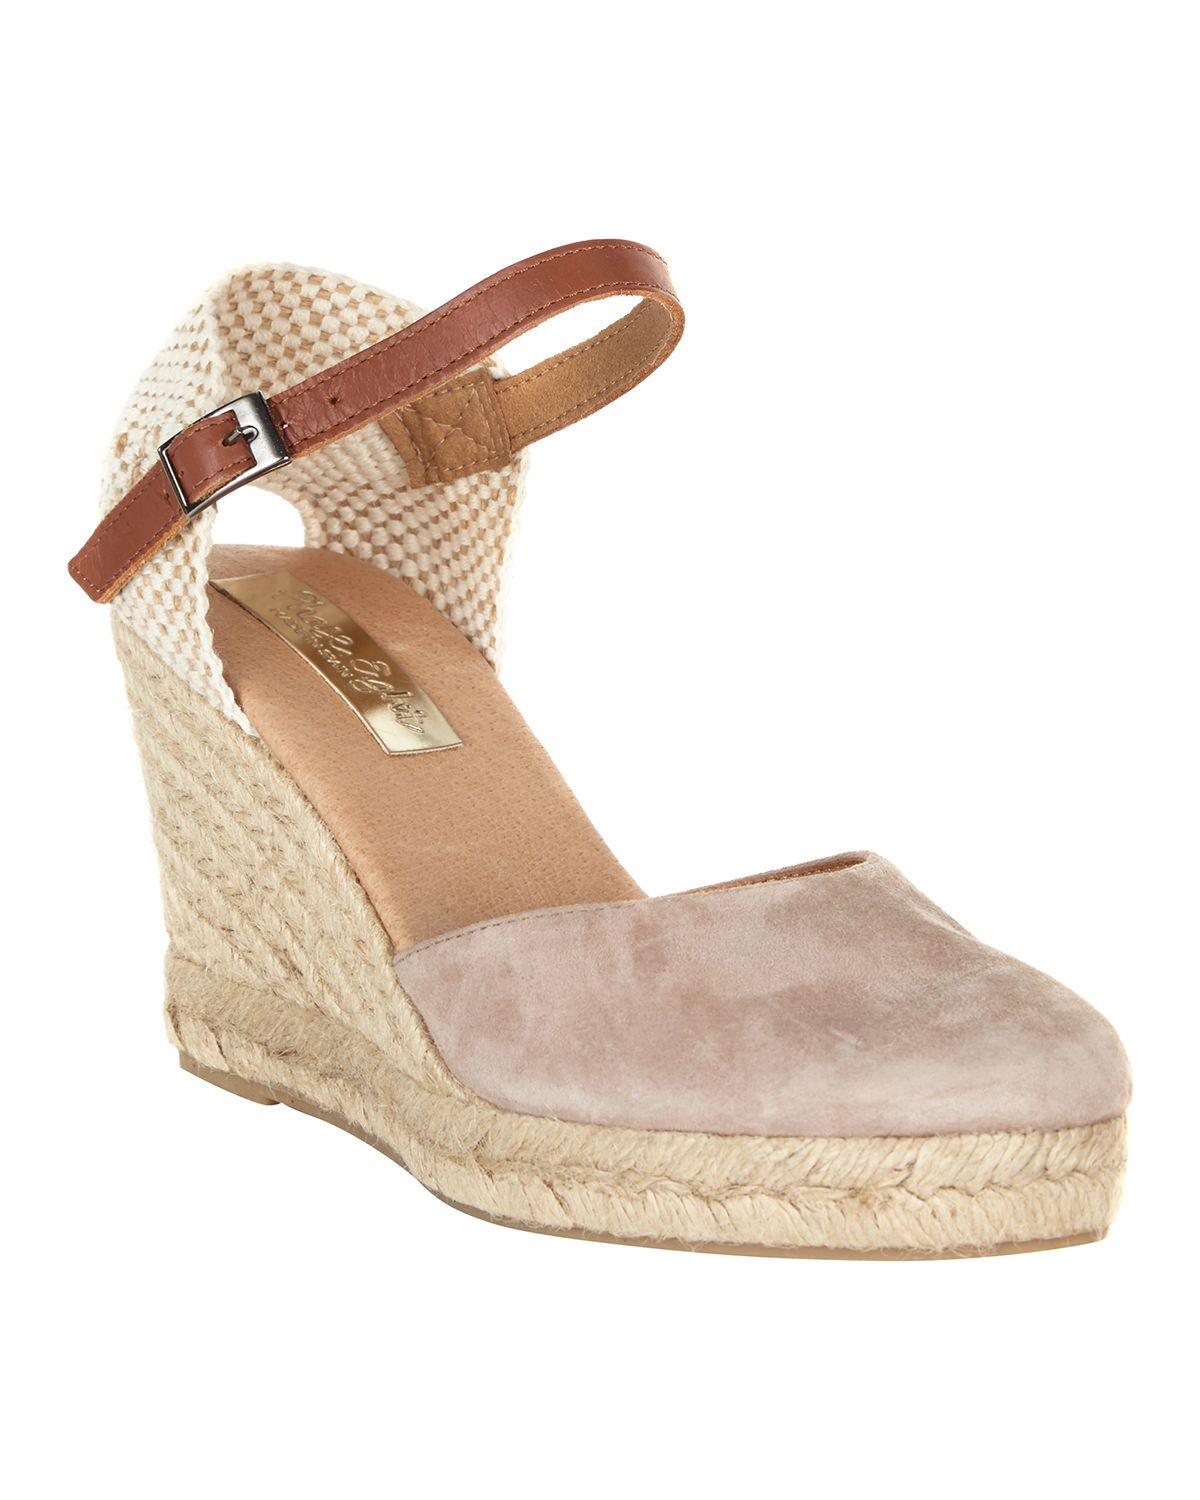 d500bf07a6 A stripe detail espadrille wedge with a leather-look ankle strap and closed  toe.